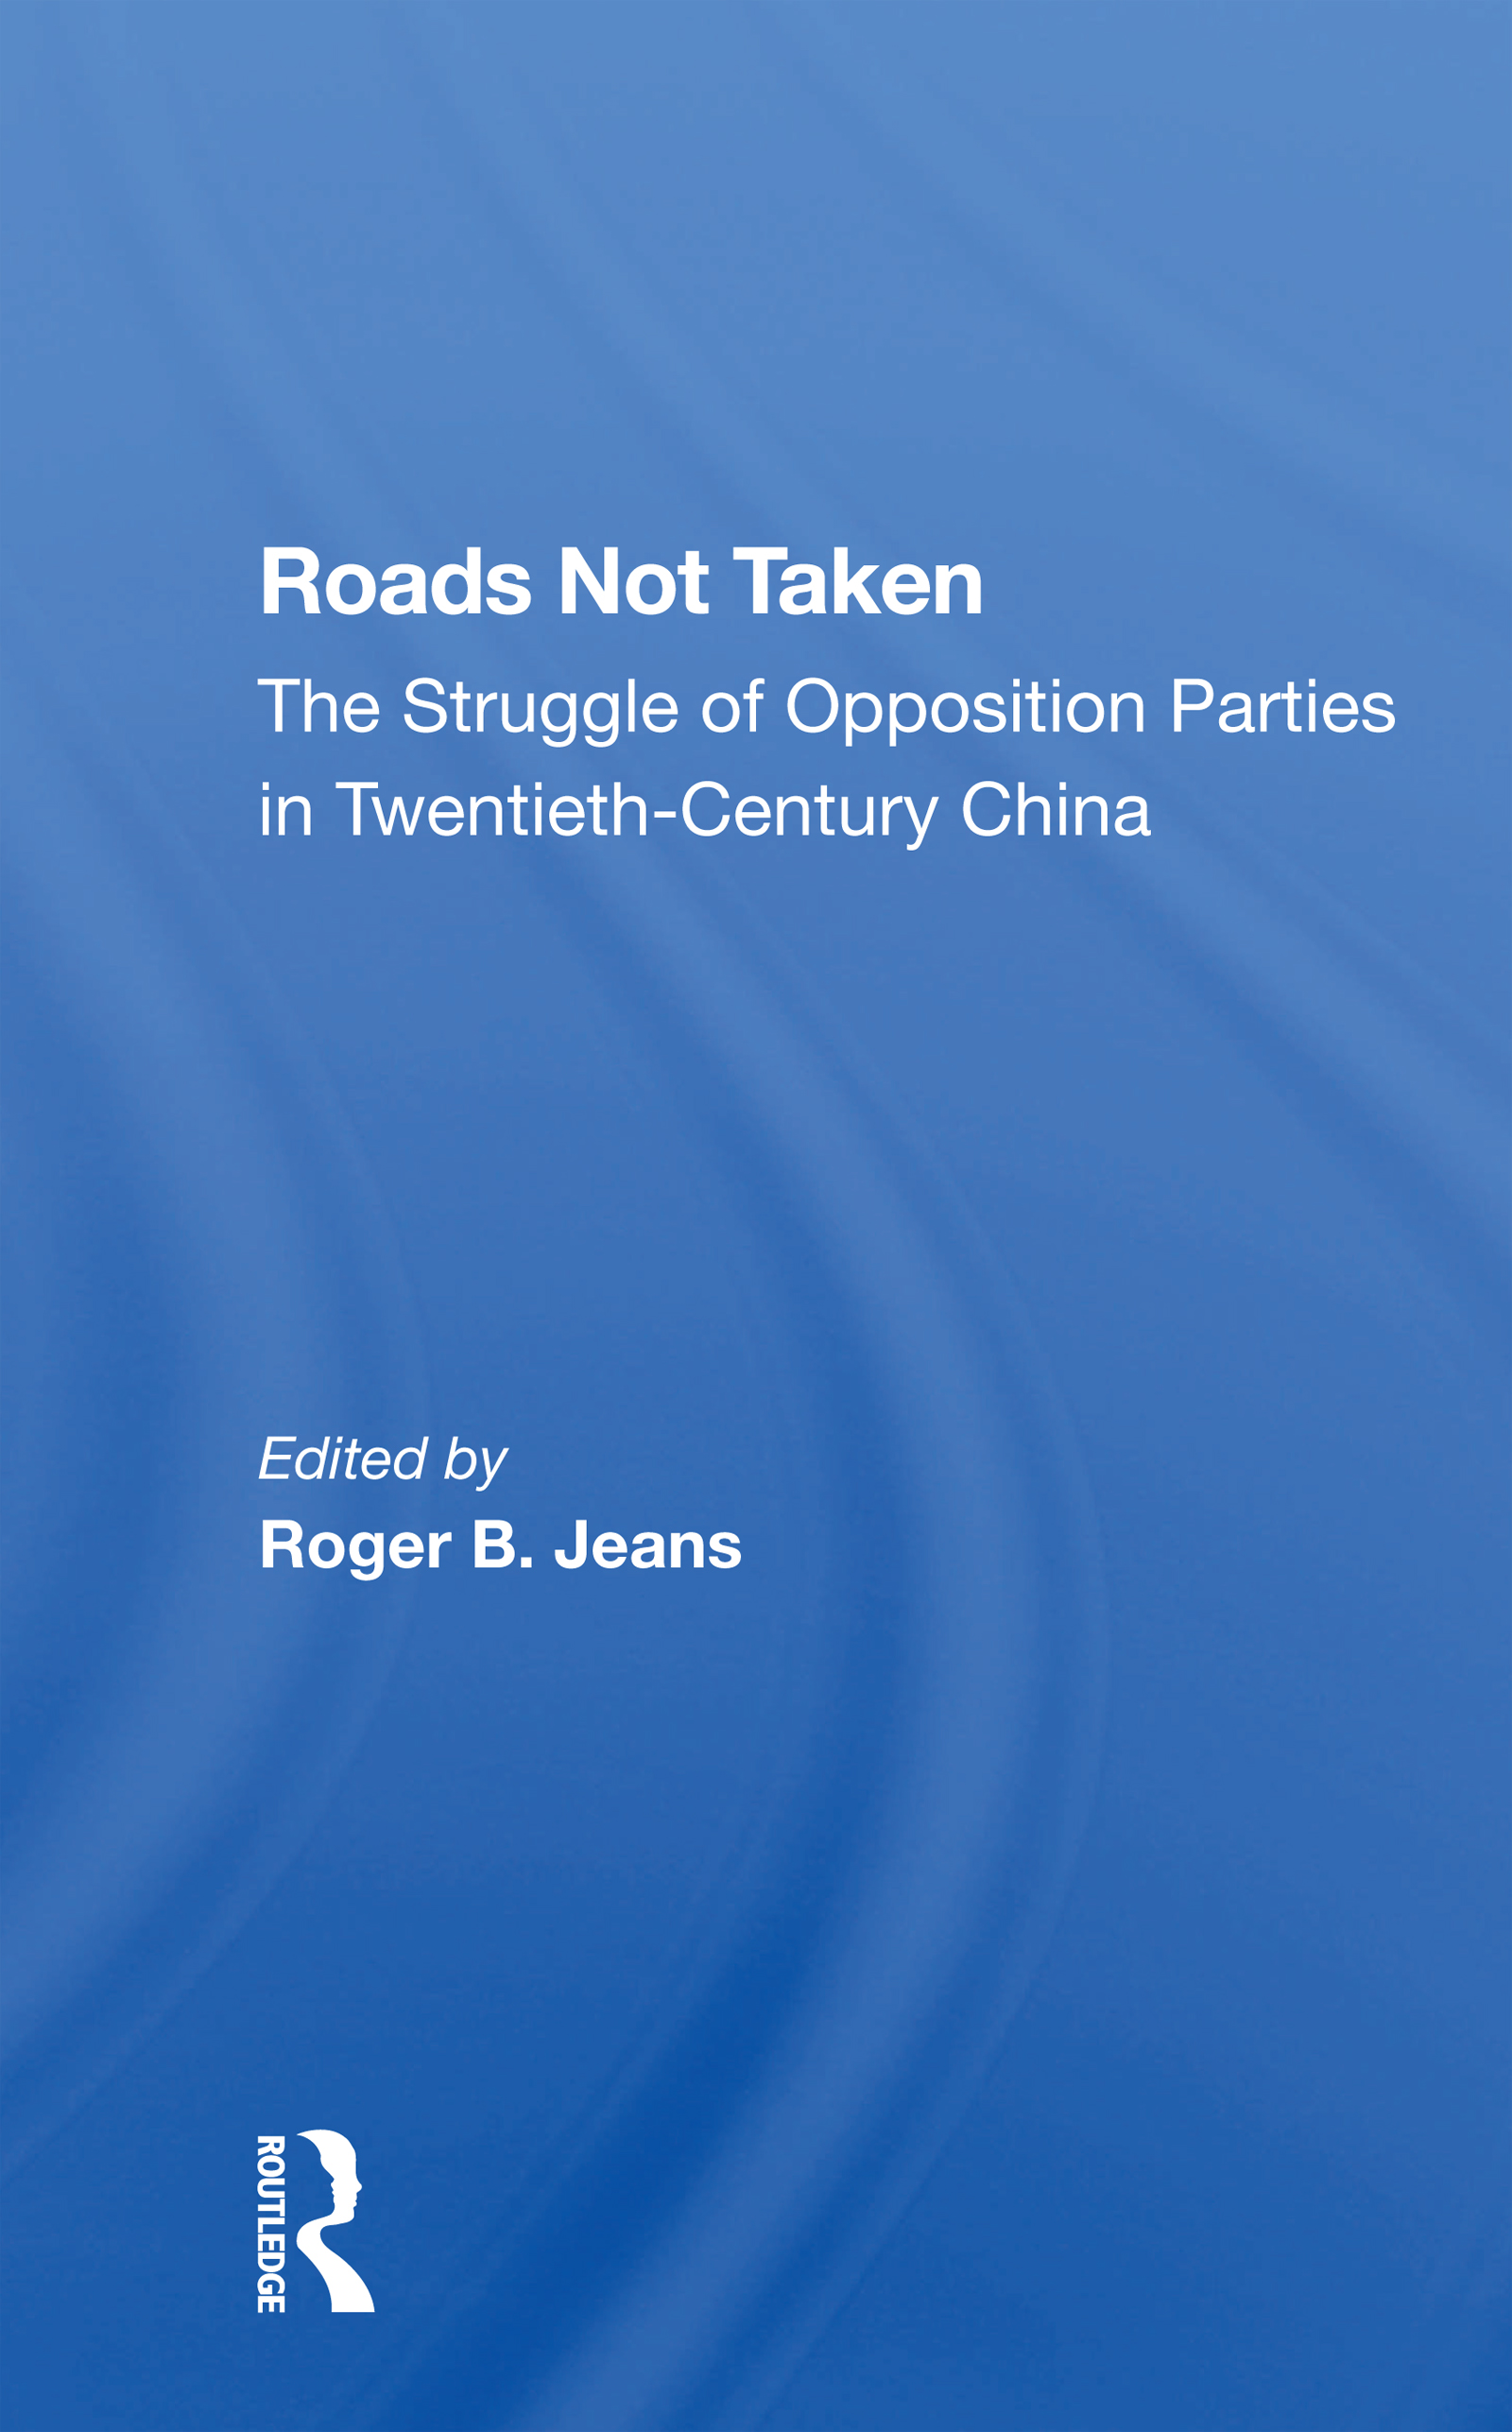 Roads Not Taken